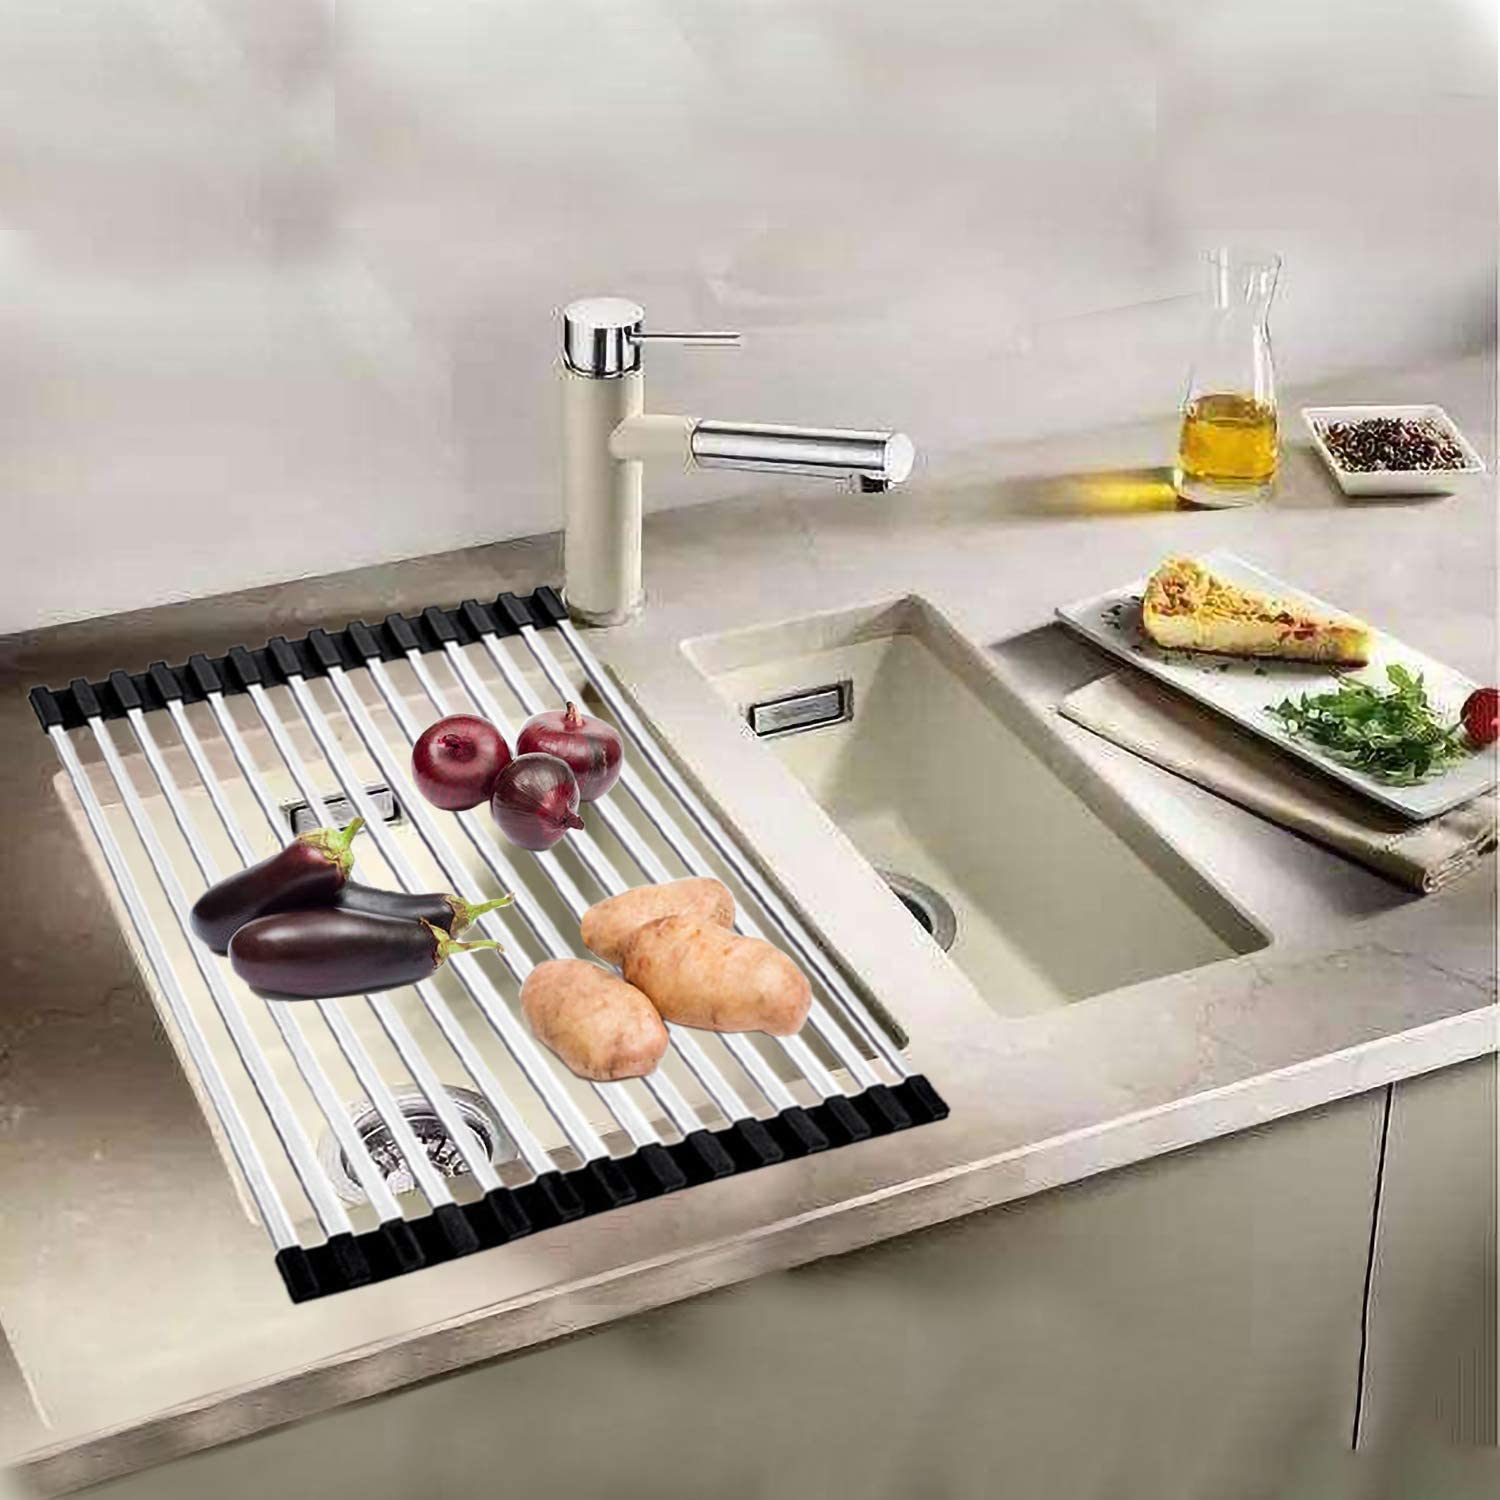 Ahyuan Roll up Dish Drying Rack Square Tubes Stainless Still Over The Sink Dish Rack Roll Up Dish Drainers for Kitchen Sink Counter Roll-up Drying Rack Foldable Dish Drying Rack (17.8